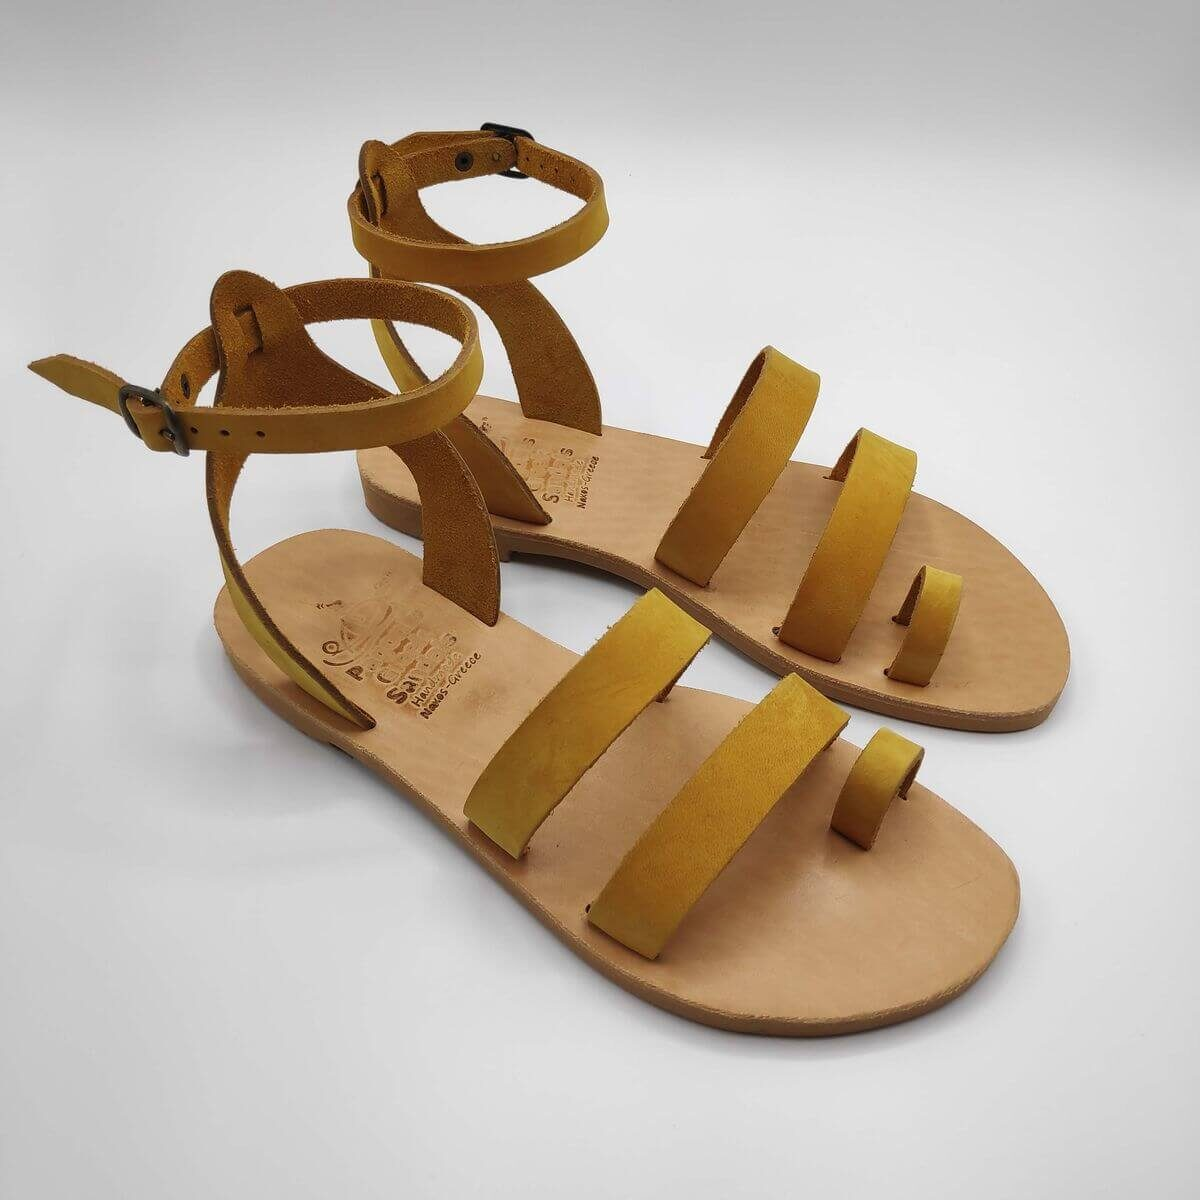 Yellow nubuck leather dressy sandals with two straps, toe ring and high ankle strap, side view